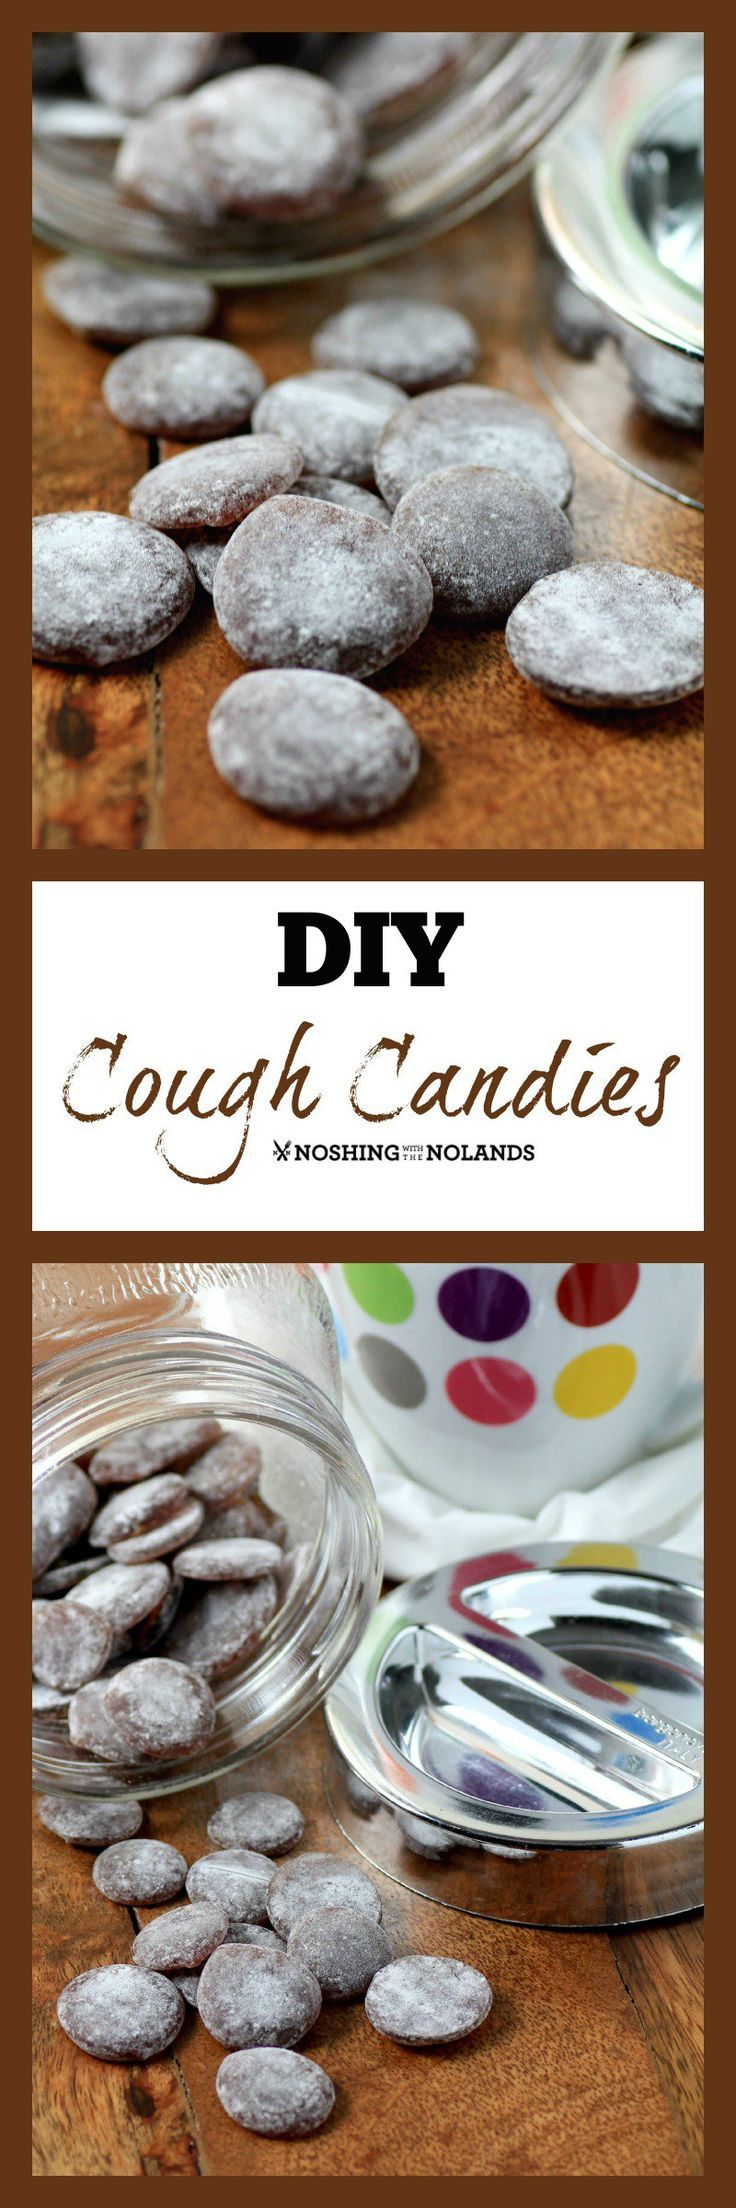 DIY Cough Candies by Noshing With The Nolands are just what you need with cold and flu season upon us. Made with ingredients from your pantry you will feel good giving these to your family.